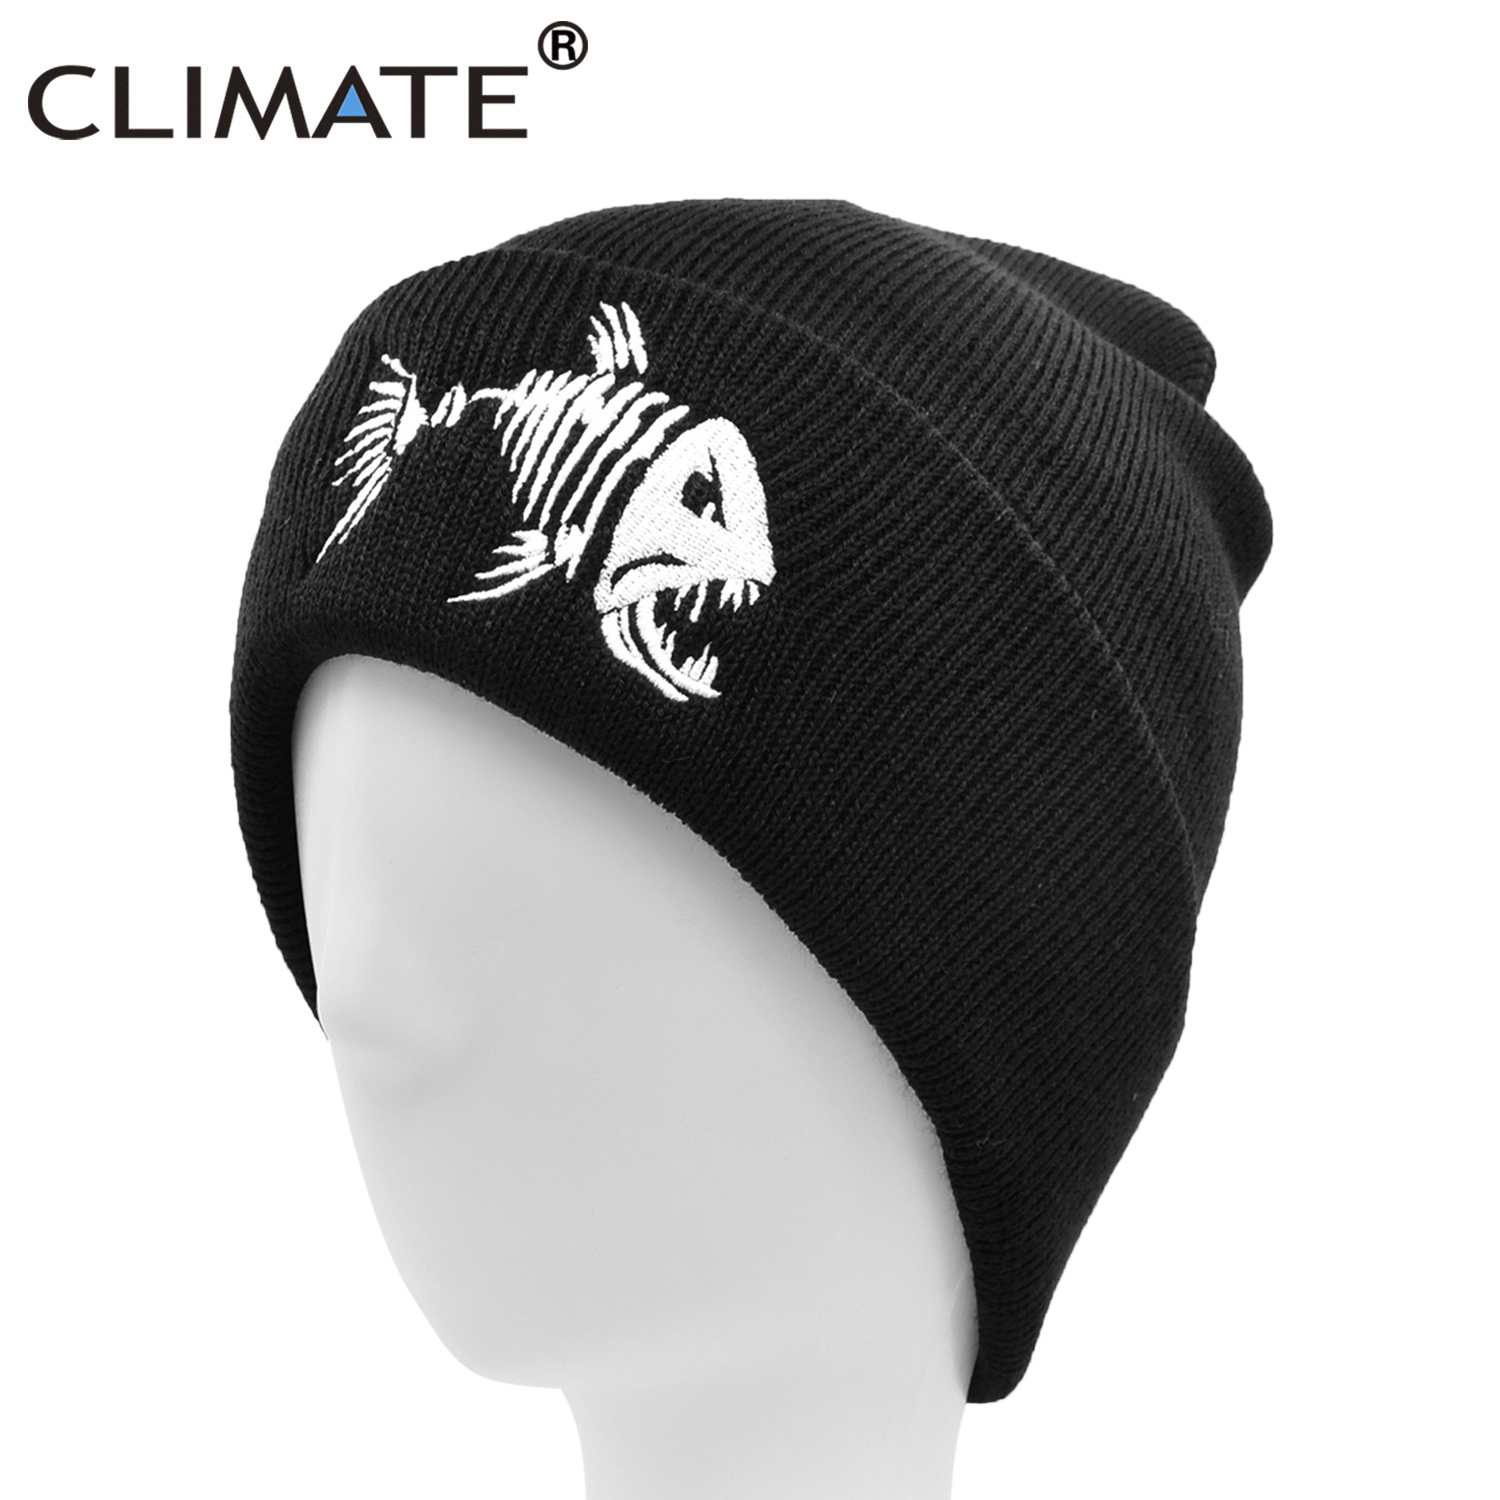 CLIMATE Men Beanie Hat Winter Warm Fishing Beanies Black Knit Skullies Fish Bone Cool Black Hip Hop Warm Hat For Man Hat Beanies